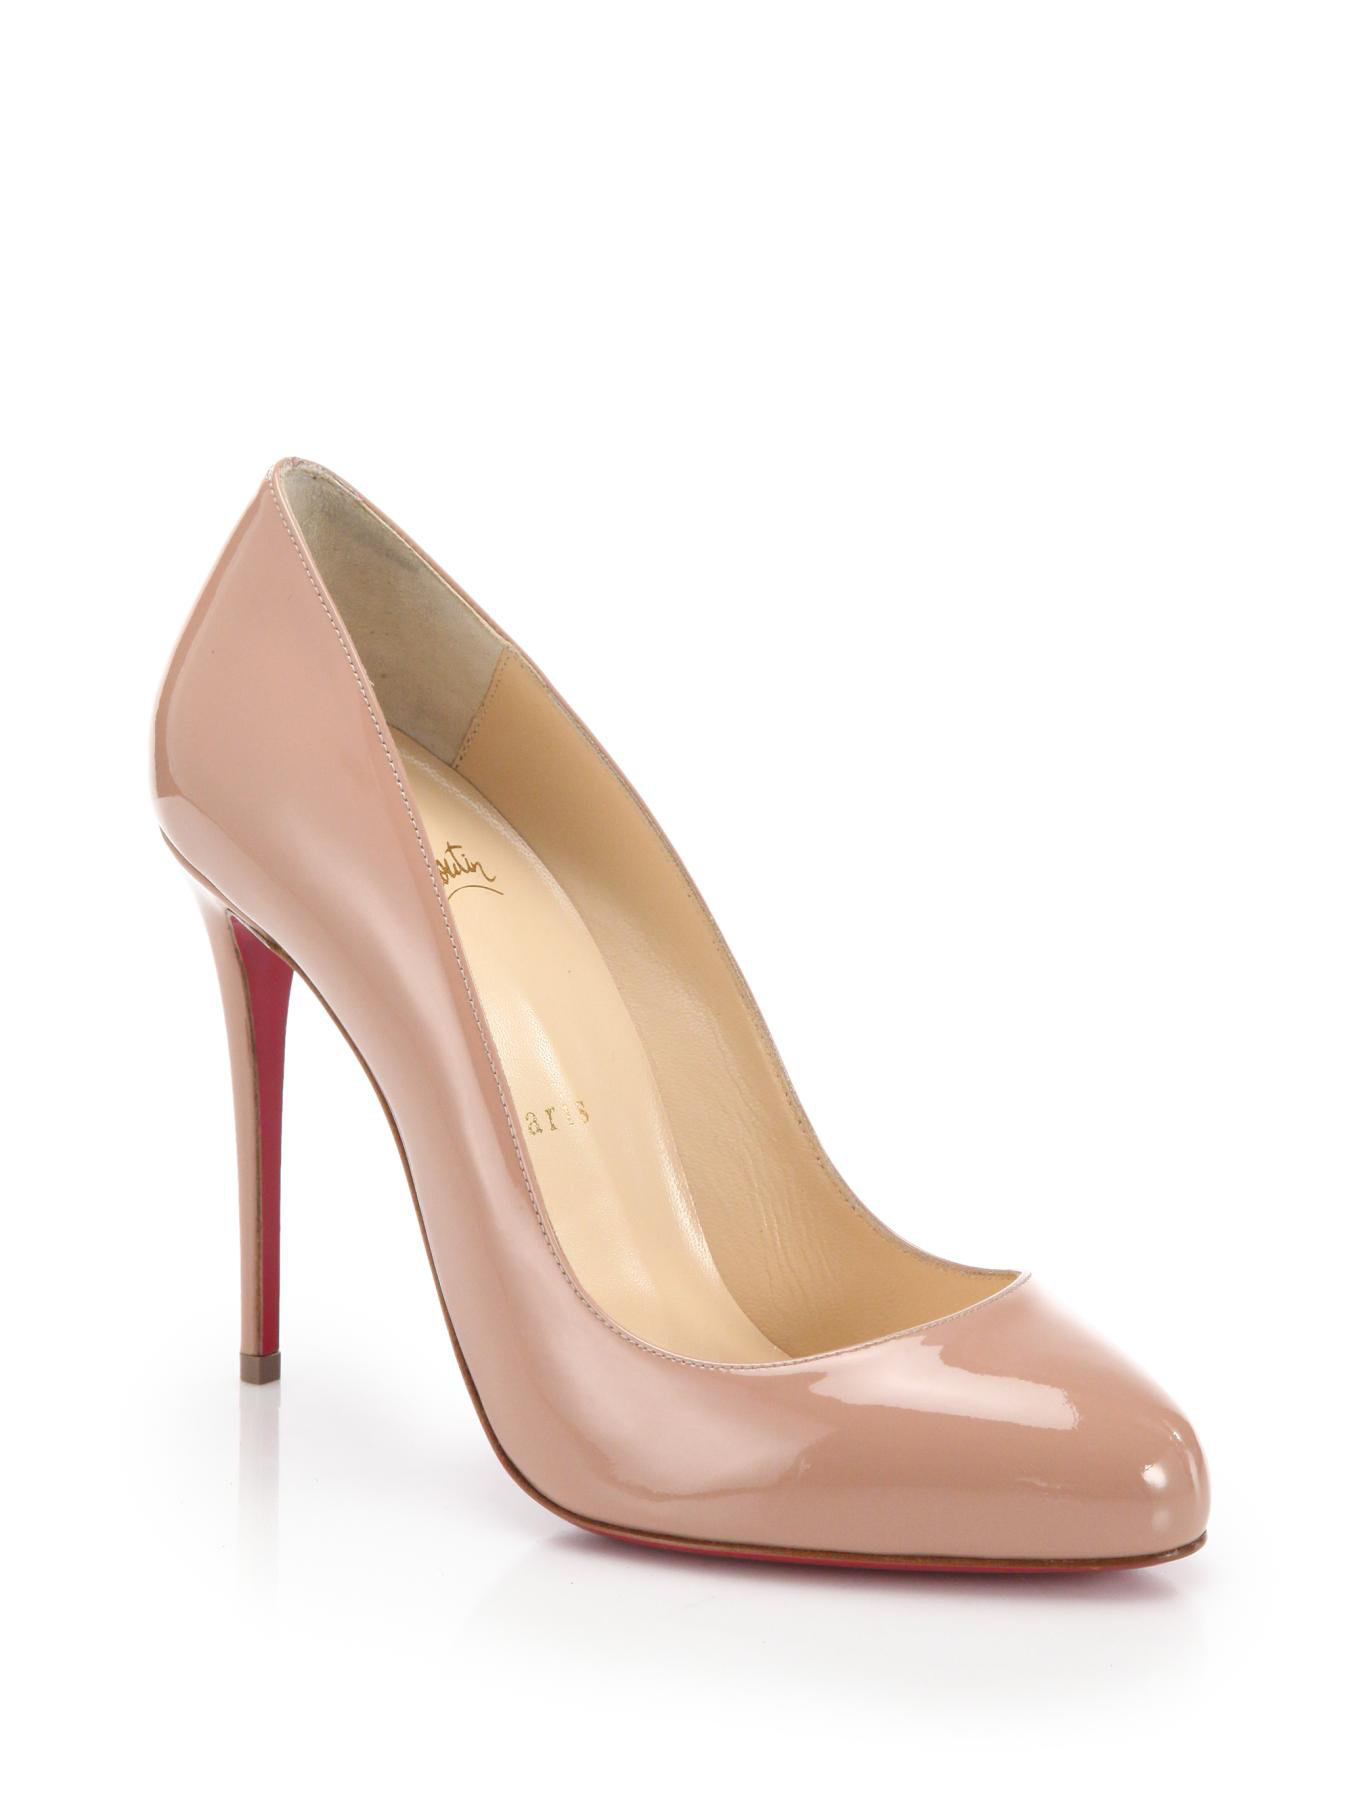 christian louboutin round-toe patent leather pumps